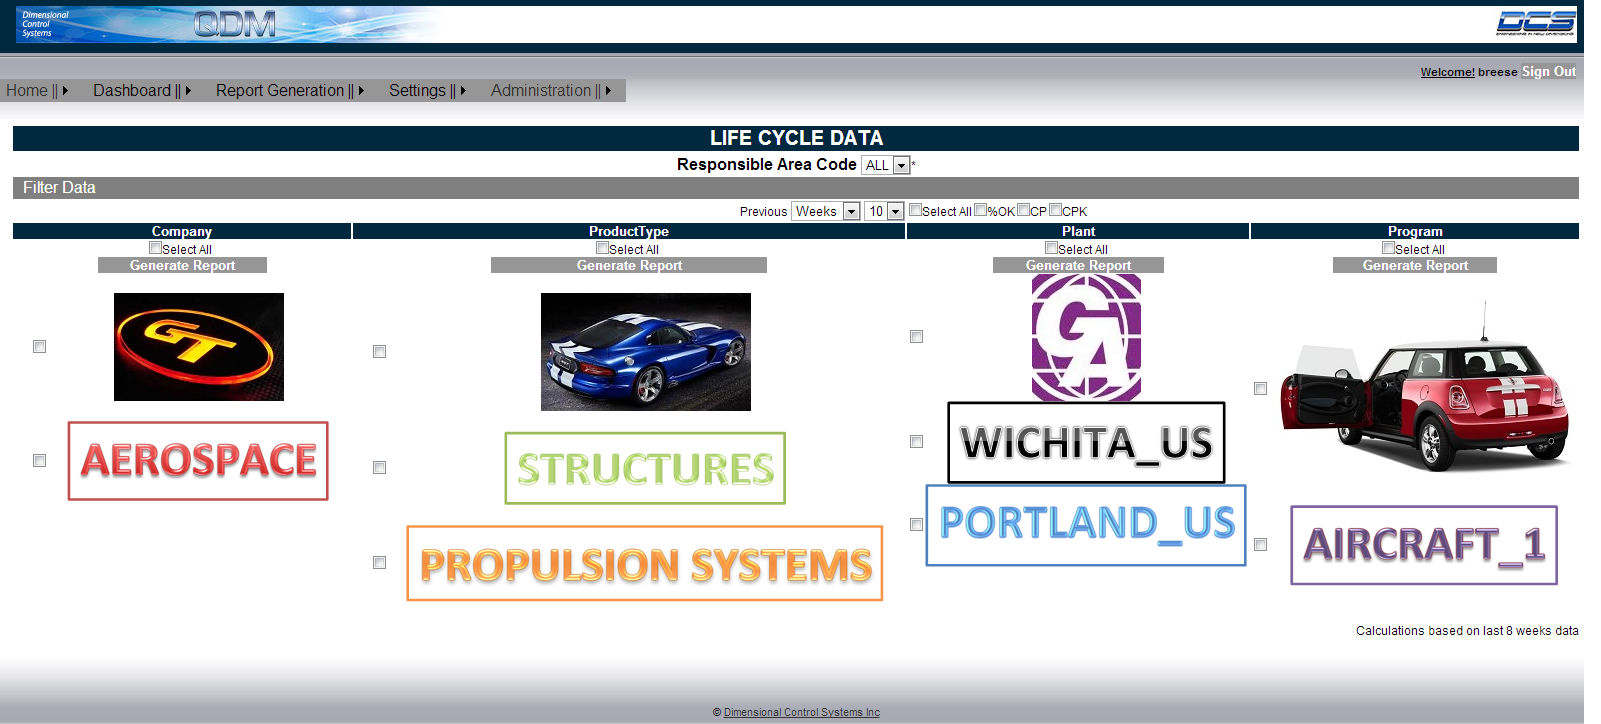 qdmweb-lifecycle-data